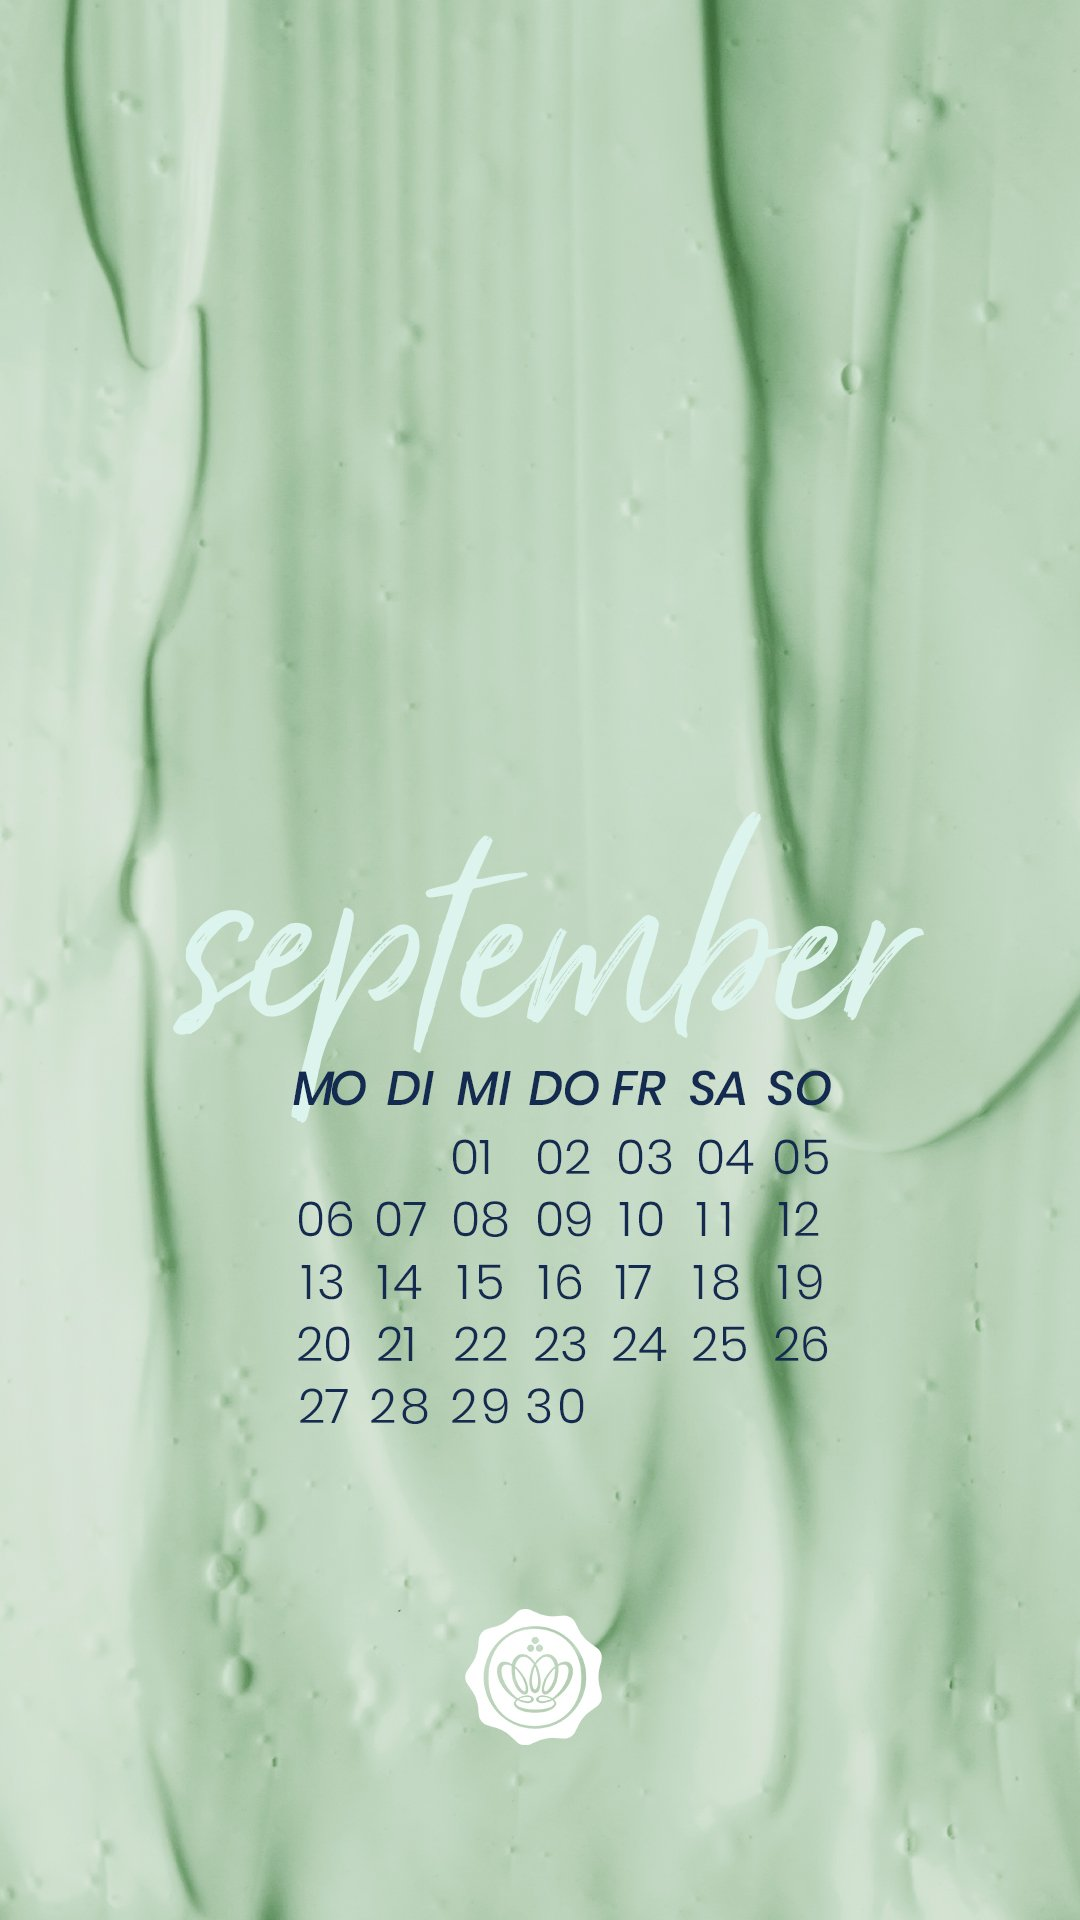 glossybox-wallpaper-september-2021-pure-relaxation-edition-screensaver